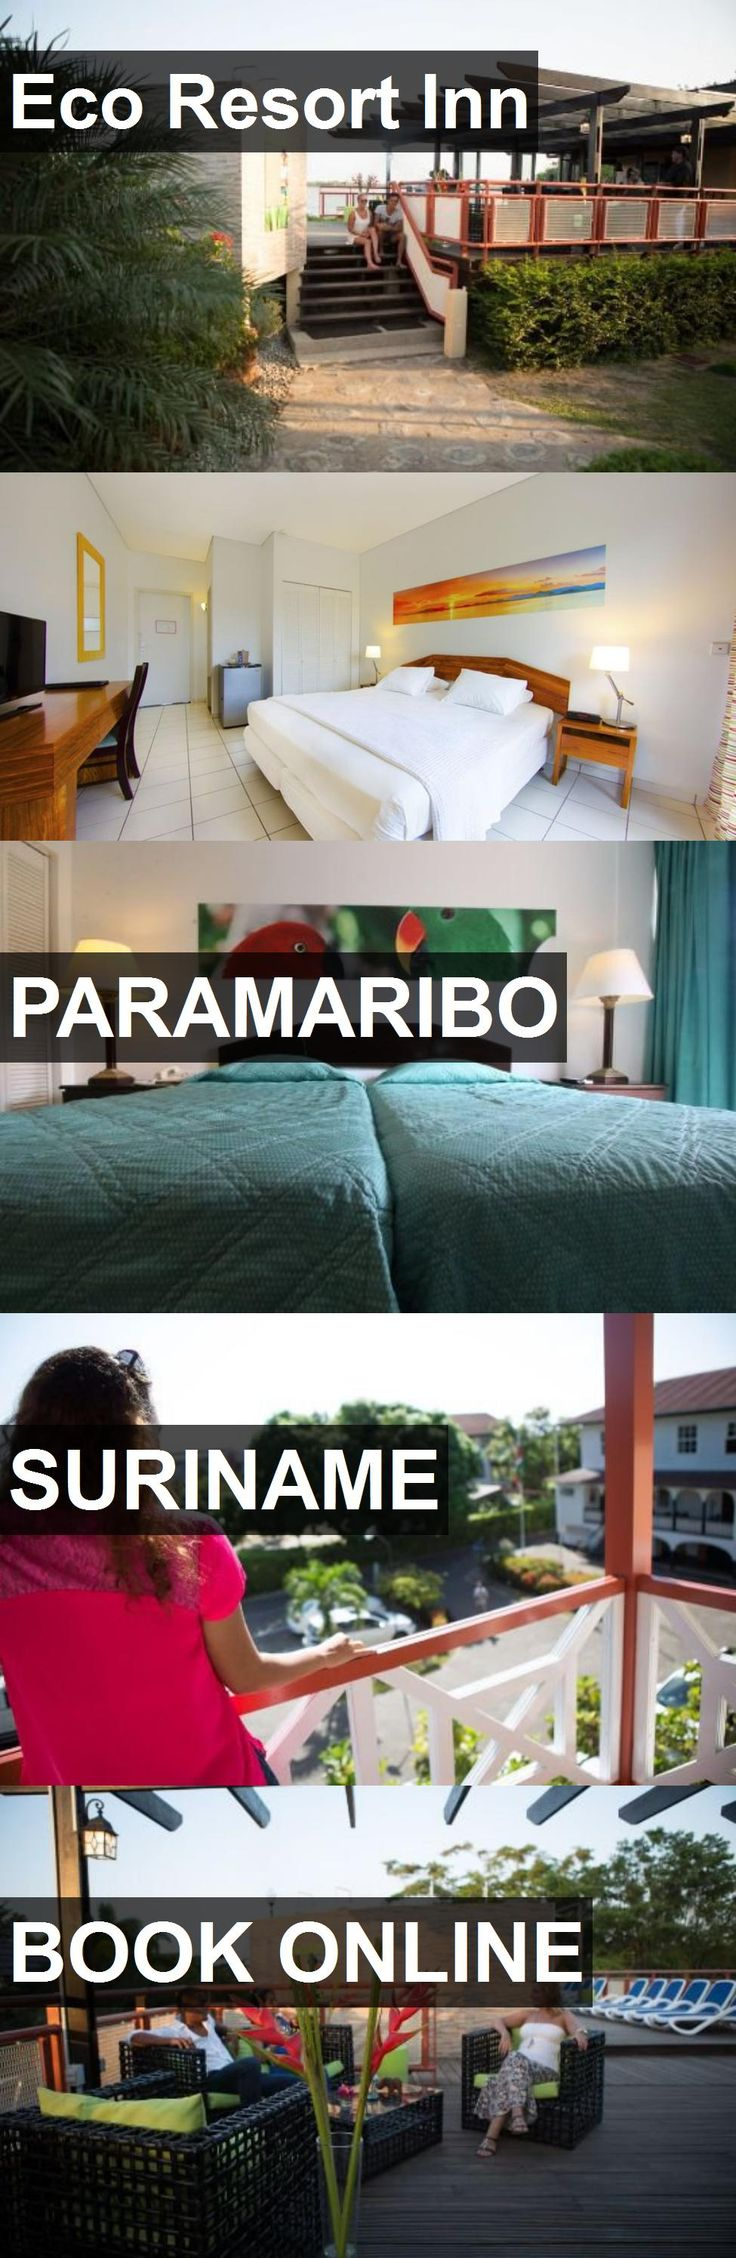 Hotel Eco Resort Inn in Paramaribo, Suriname. For more information, photos, reviews and best prices please follow the link. #Suriname #Paramaribo #travel #vacation #hotel